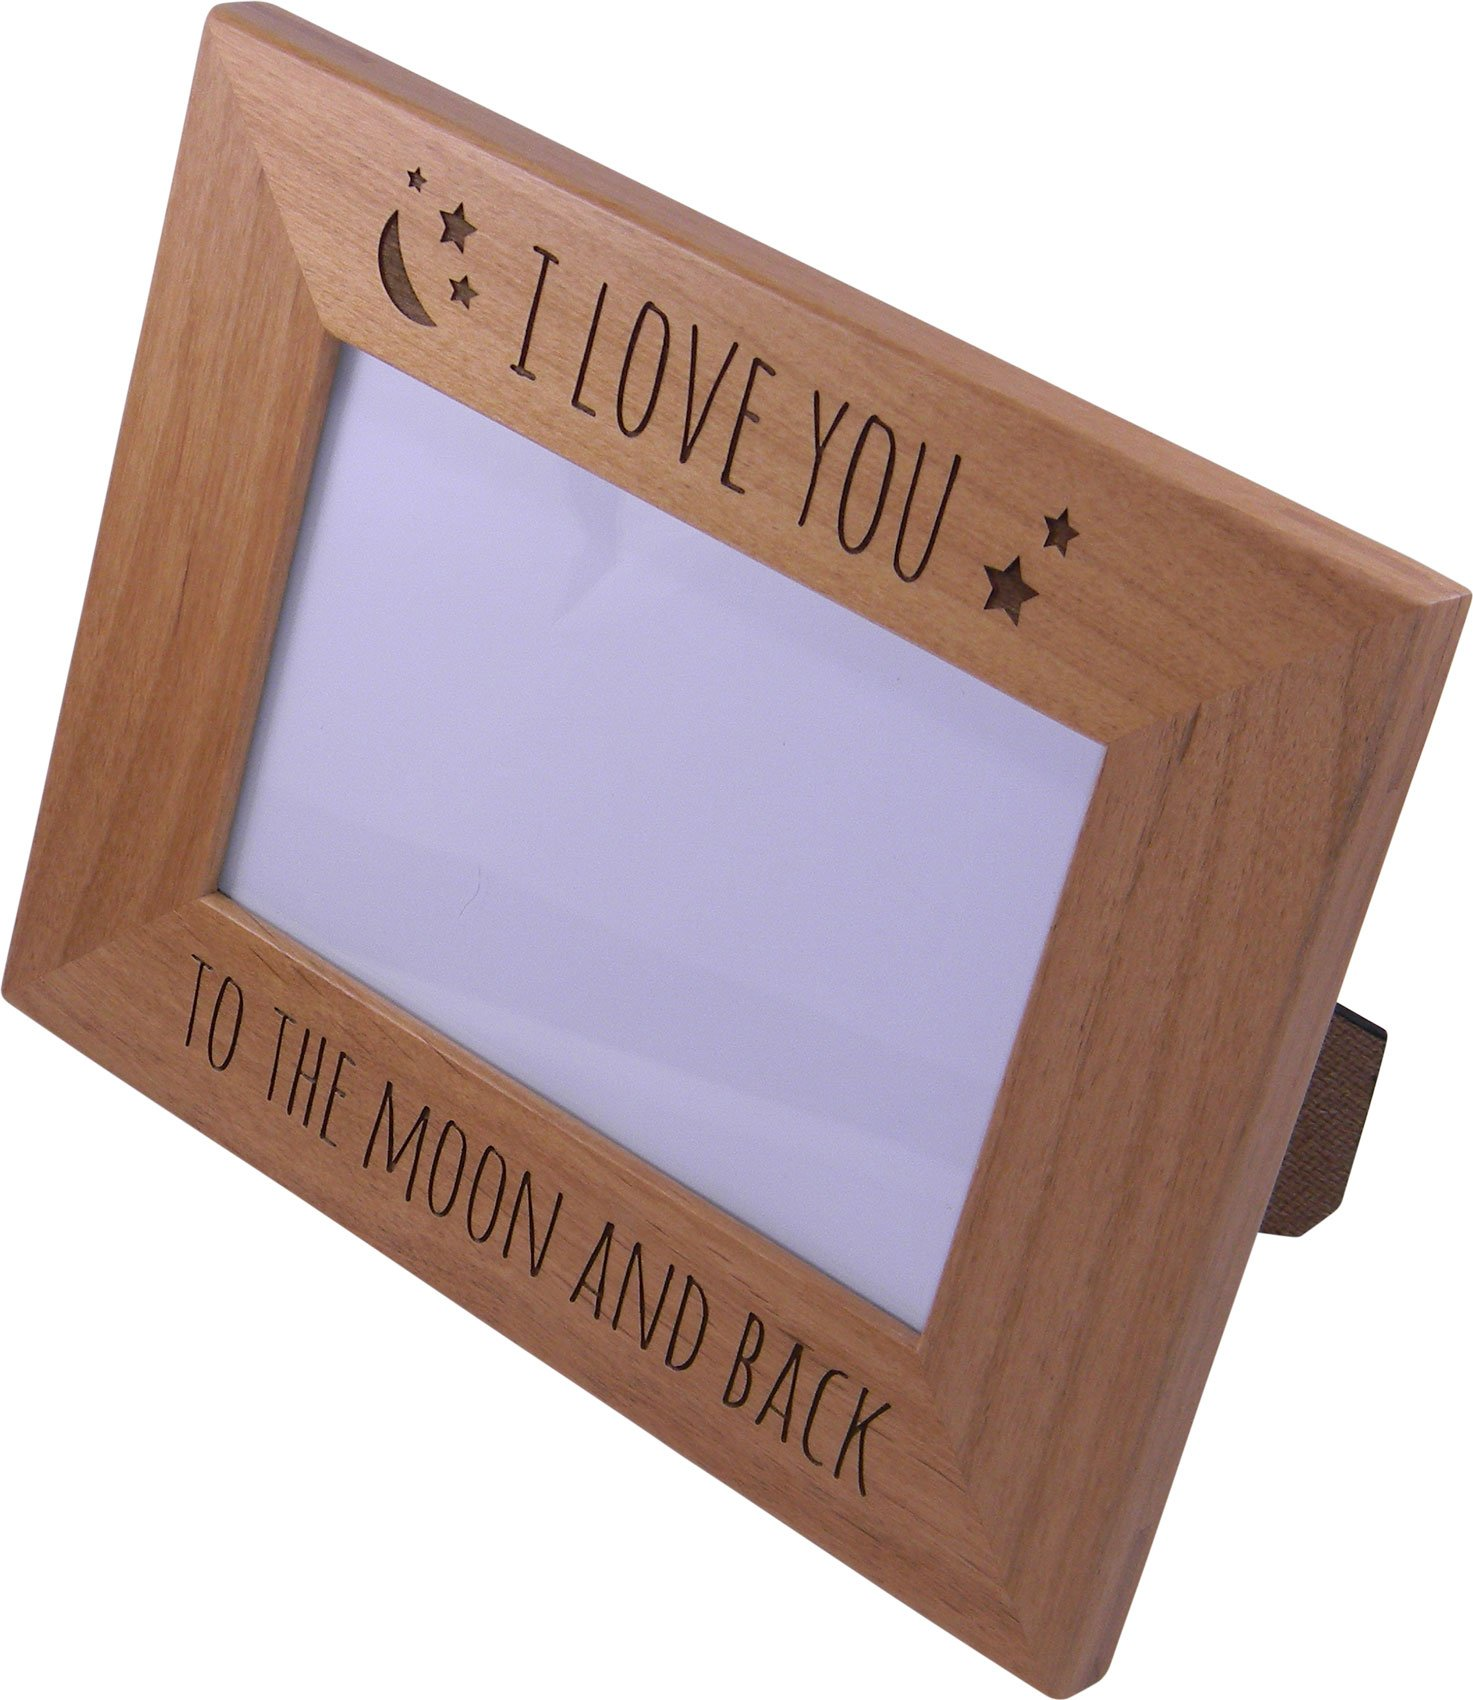 CustomGiftsNow-I-Love-You-To-The-Moon-And-Back-Wood-Picture-Frame-Holds-4×6-Inch-Photo-Great-Gift-for-Motherss-Fathers-Day-BirthdayValentines-Day-Anniversary-or